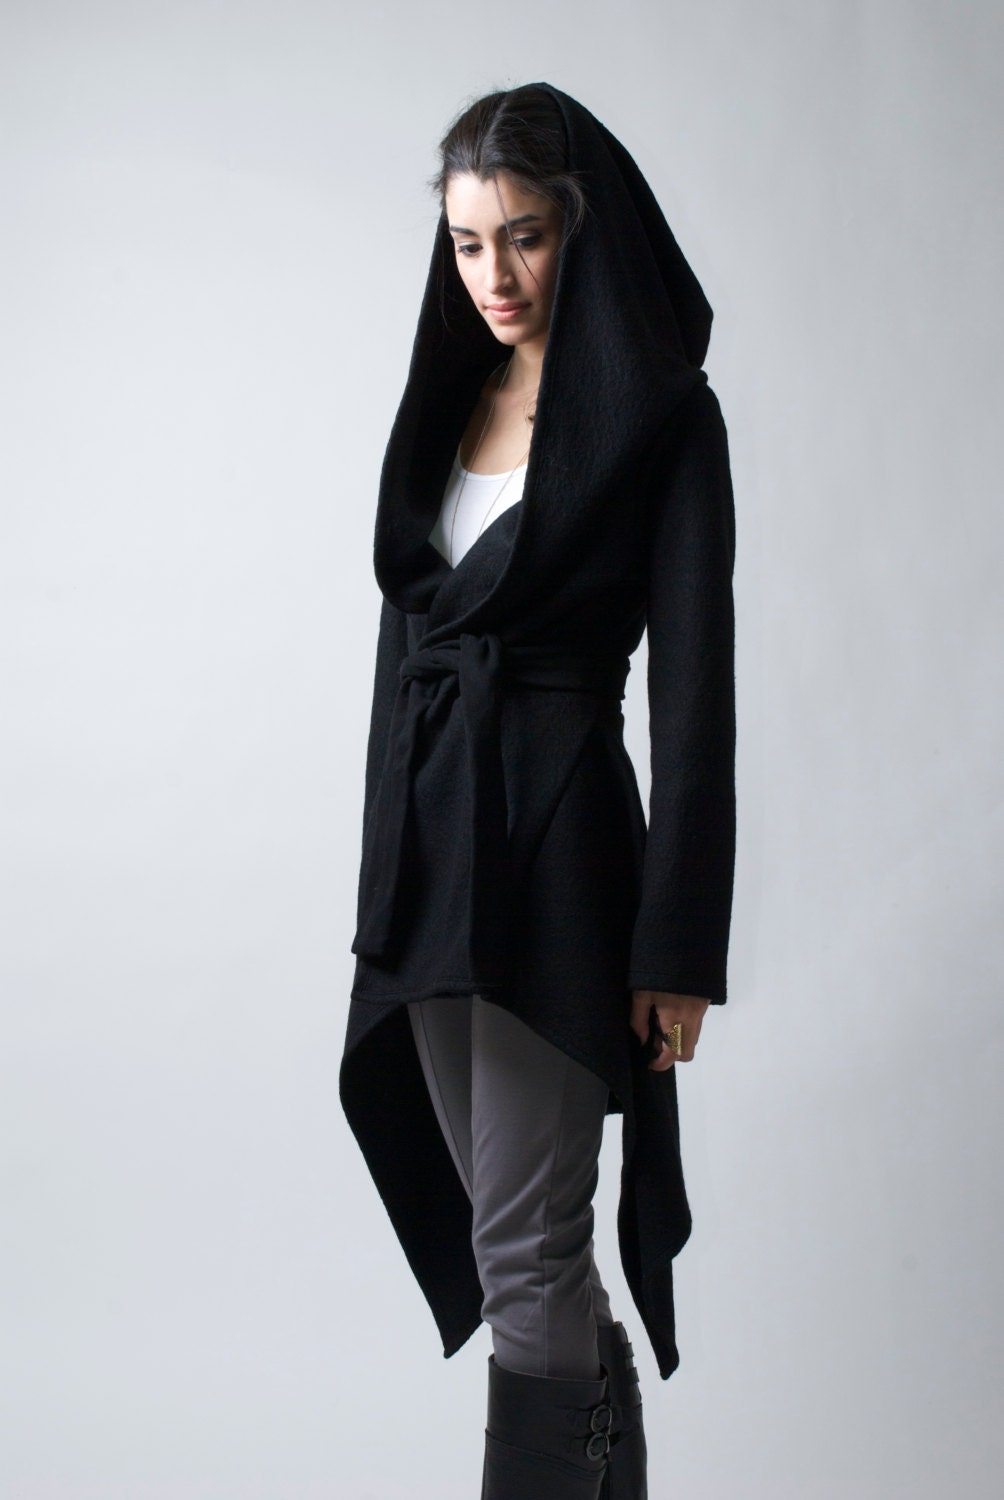 Black Coat with a Hood / Asymmetric Hoody Cardigan / Sweater